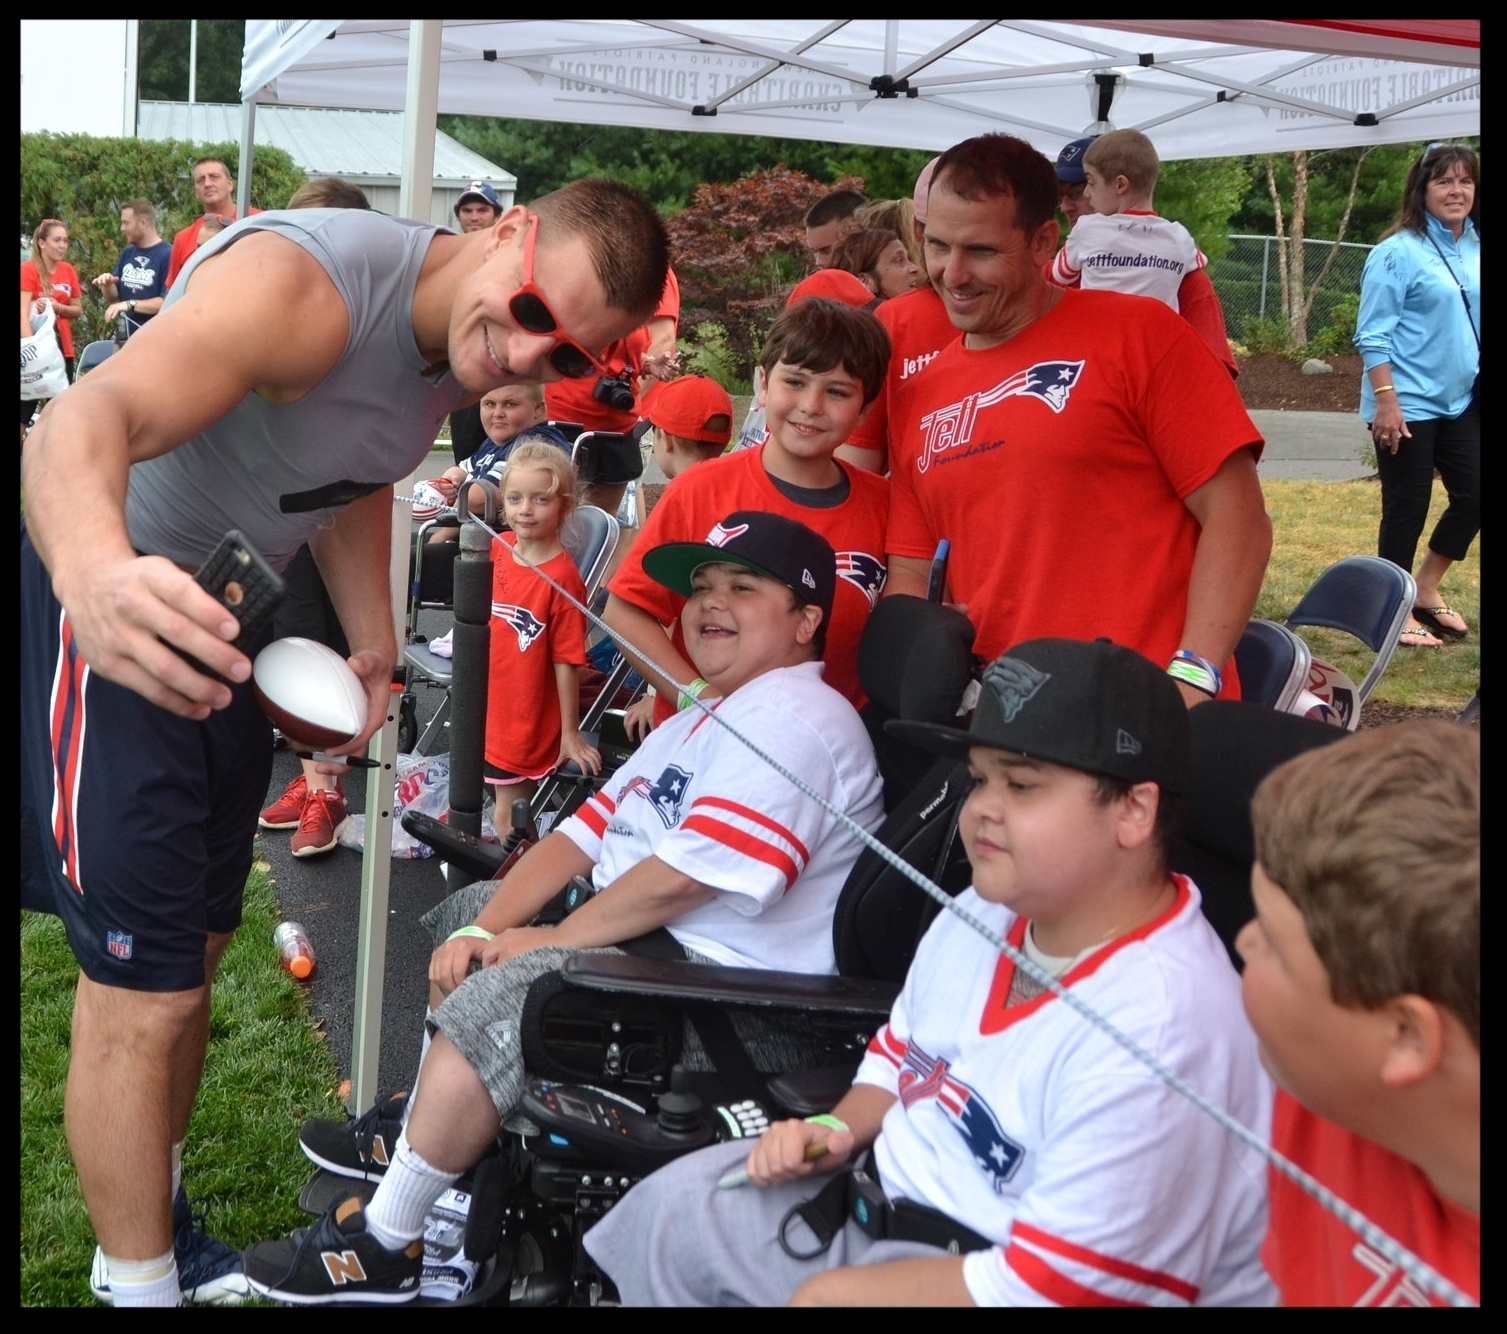 Coach Belichick hanging with the Duchenne community!